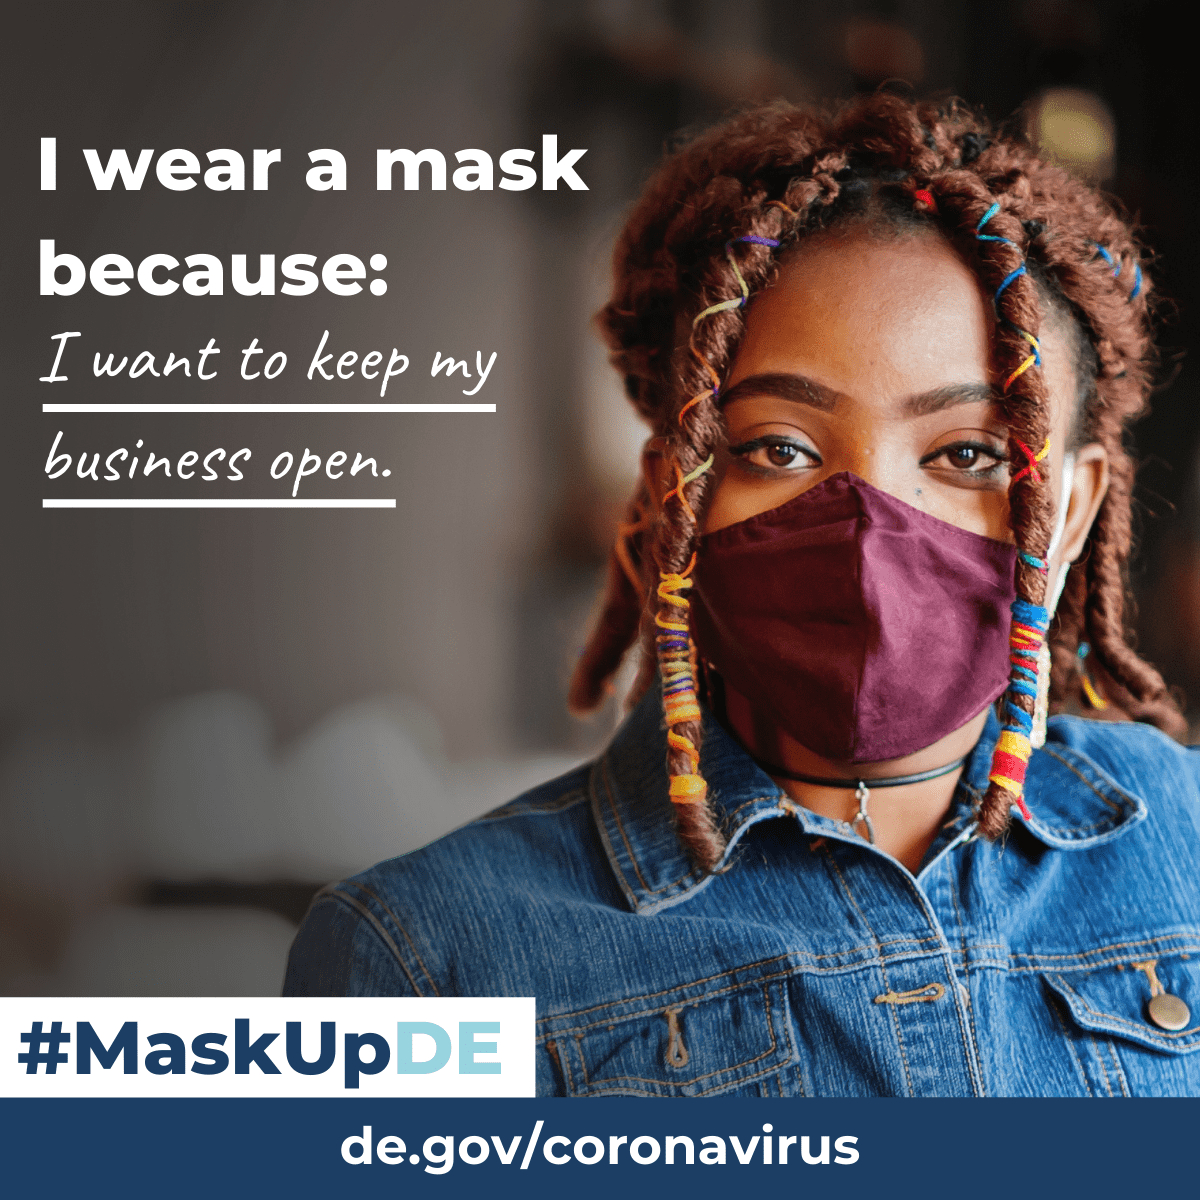 I wear a mask because...